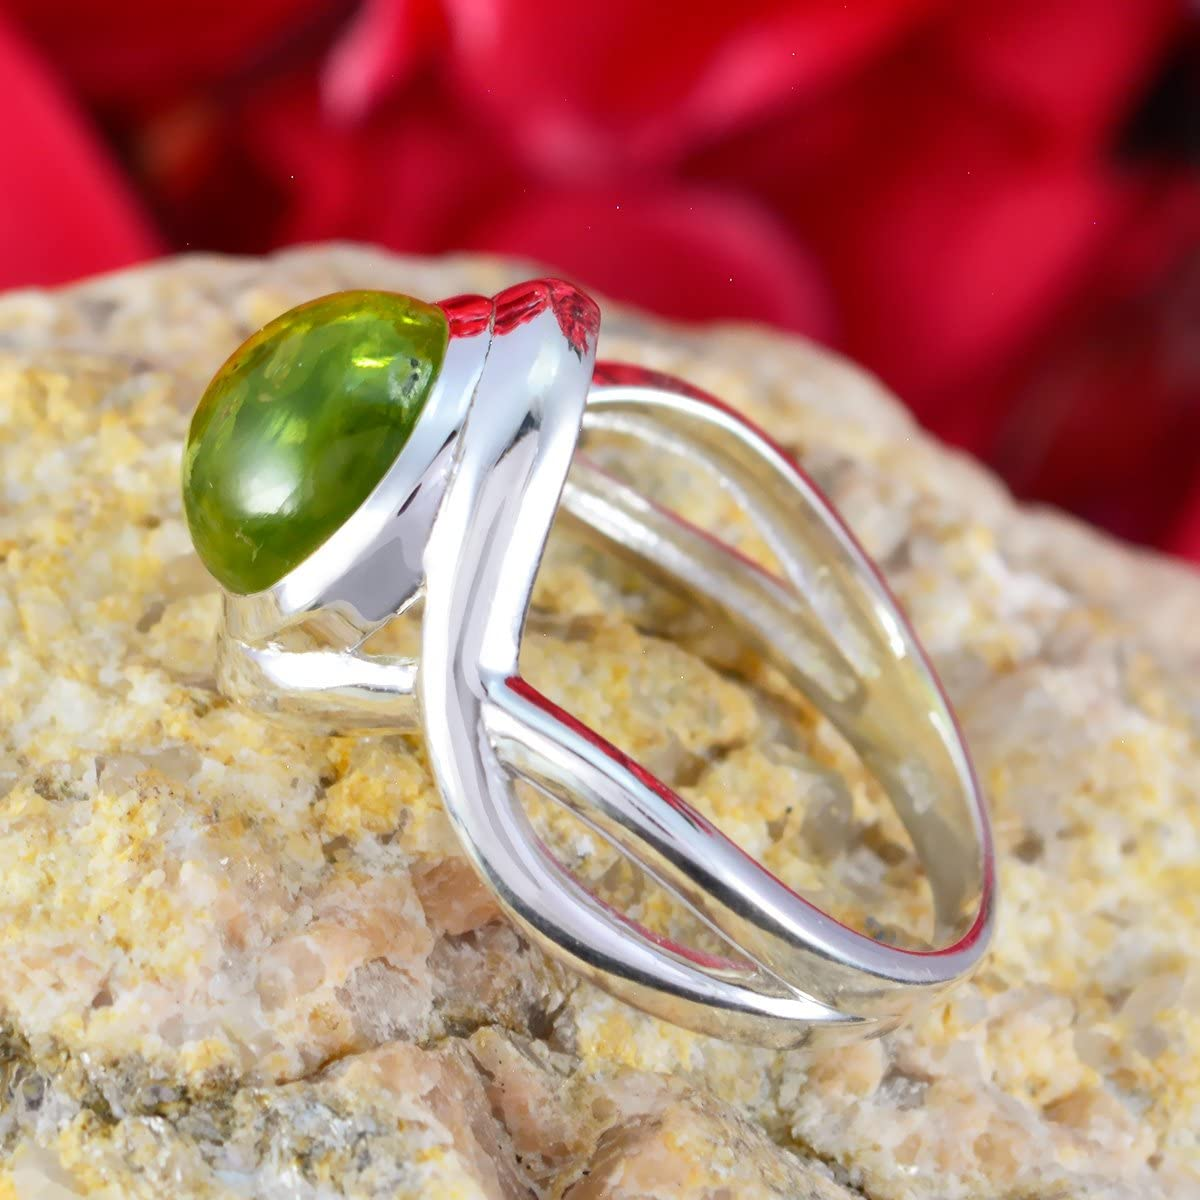 Jewelry Accessories top Selling Items Gift for New Years Day Stacking Rings Sterling Silver Green Peridot Real Gemstones Ring Real Gemstones Round cabochon Peridot Ring